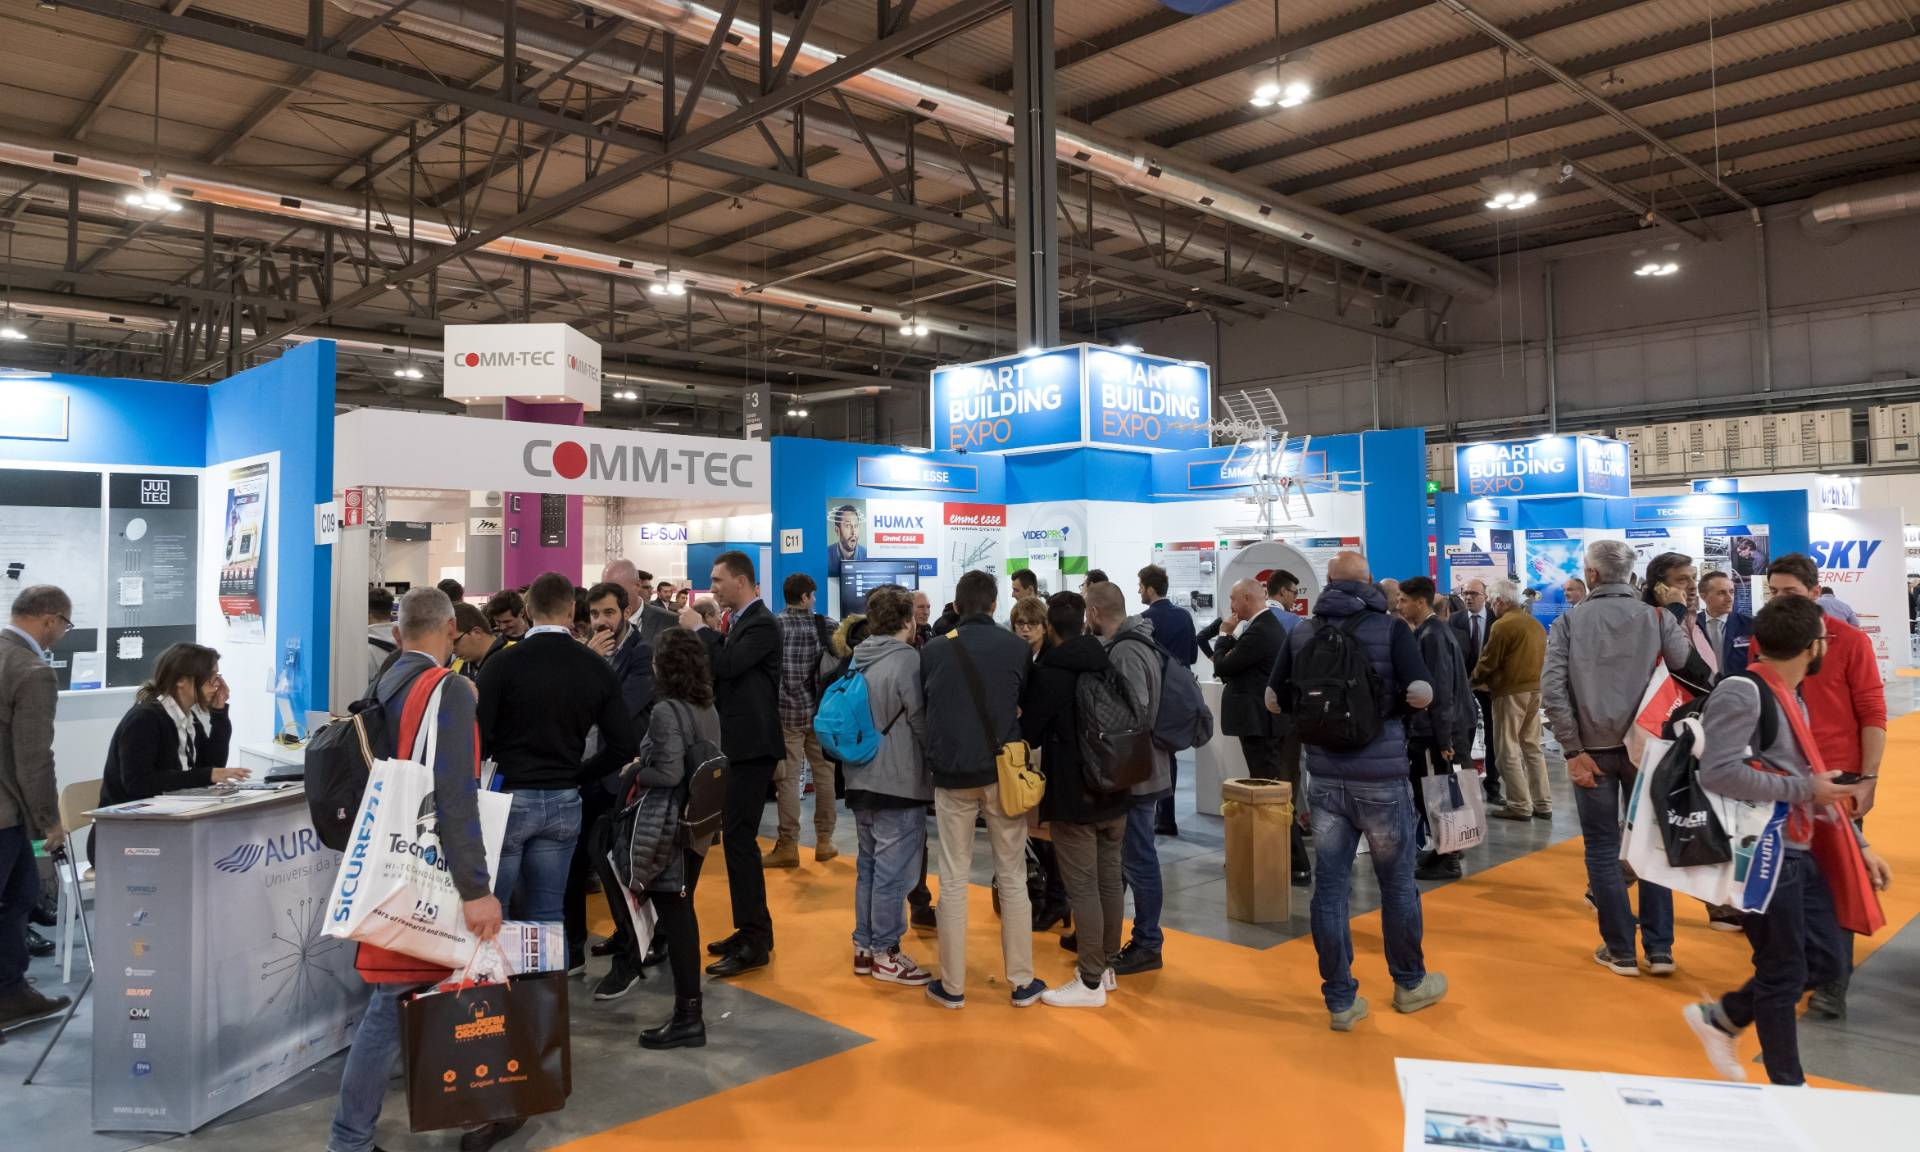 Smart Building Expo 2019: Convergence in the digital era